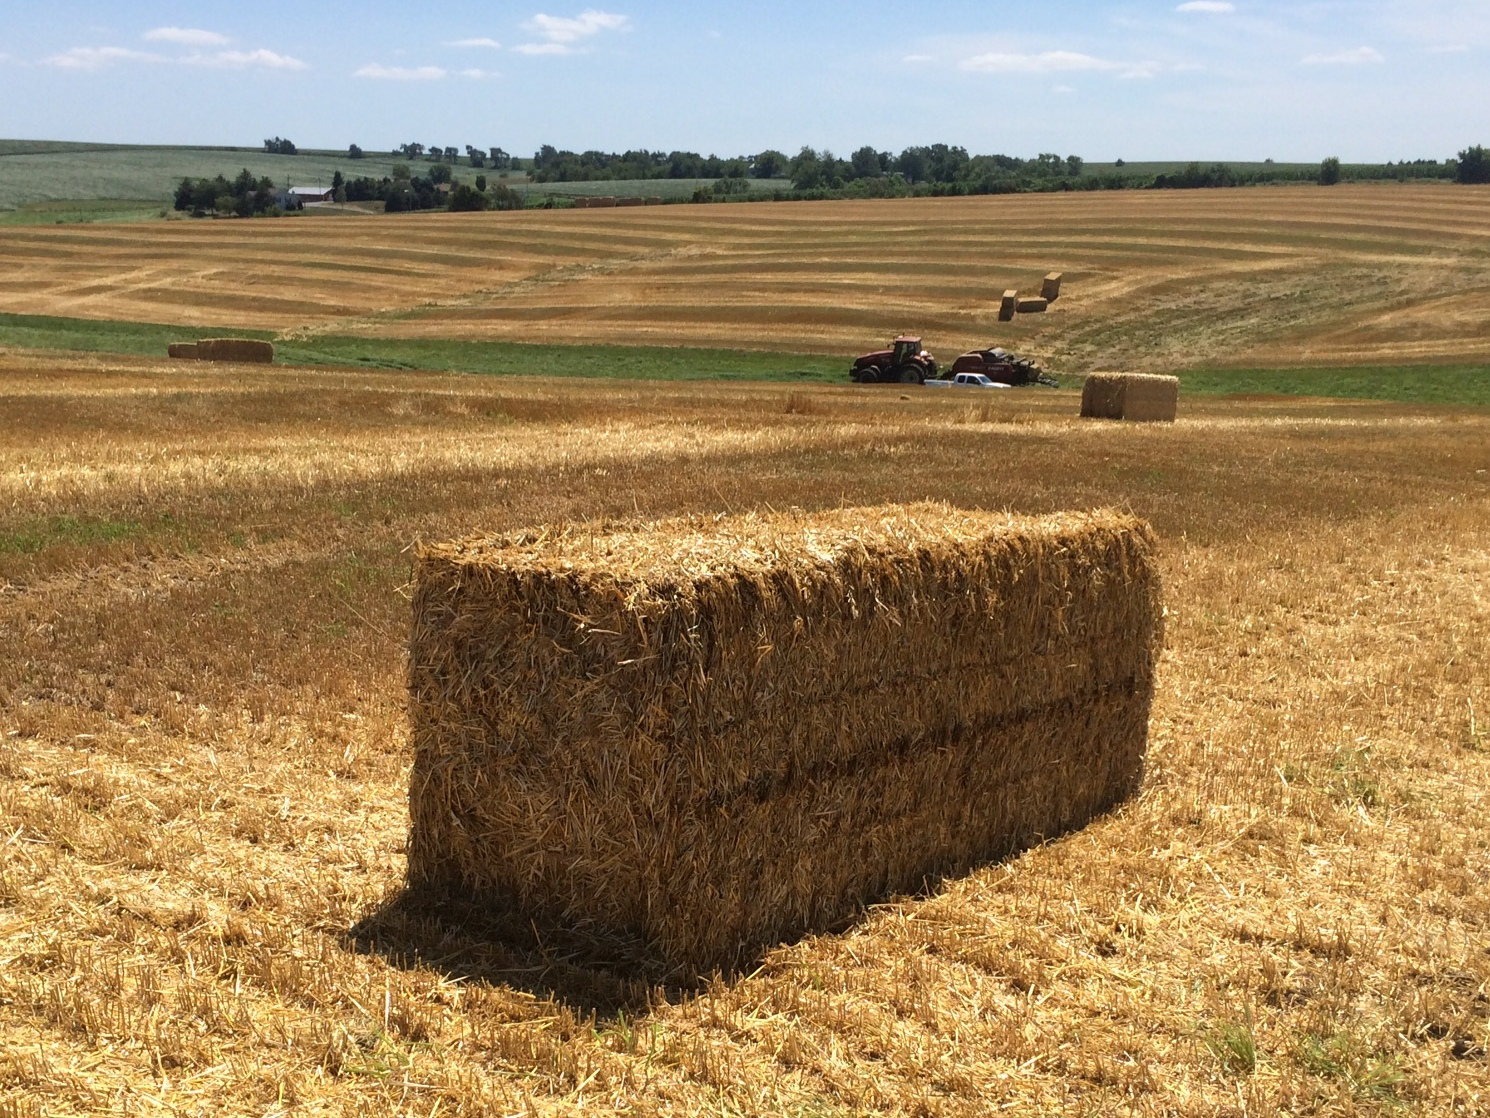 What are some benefits of a square hay baler?